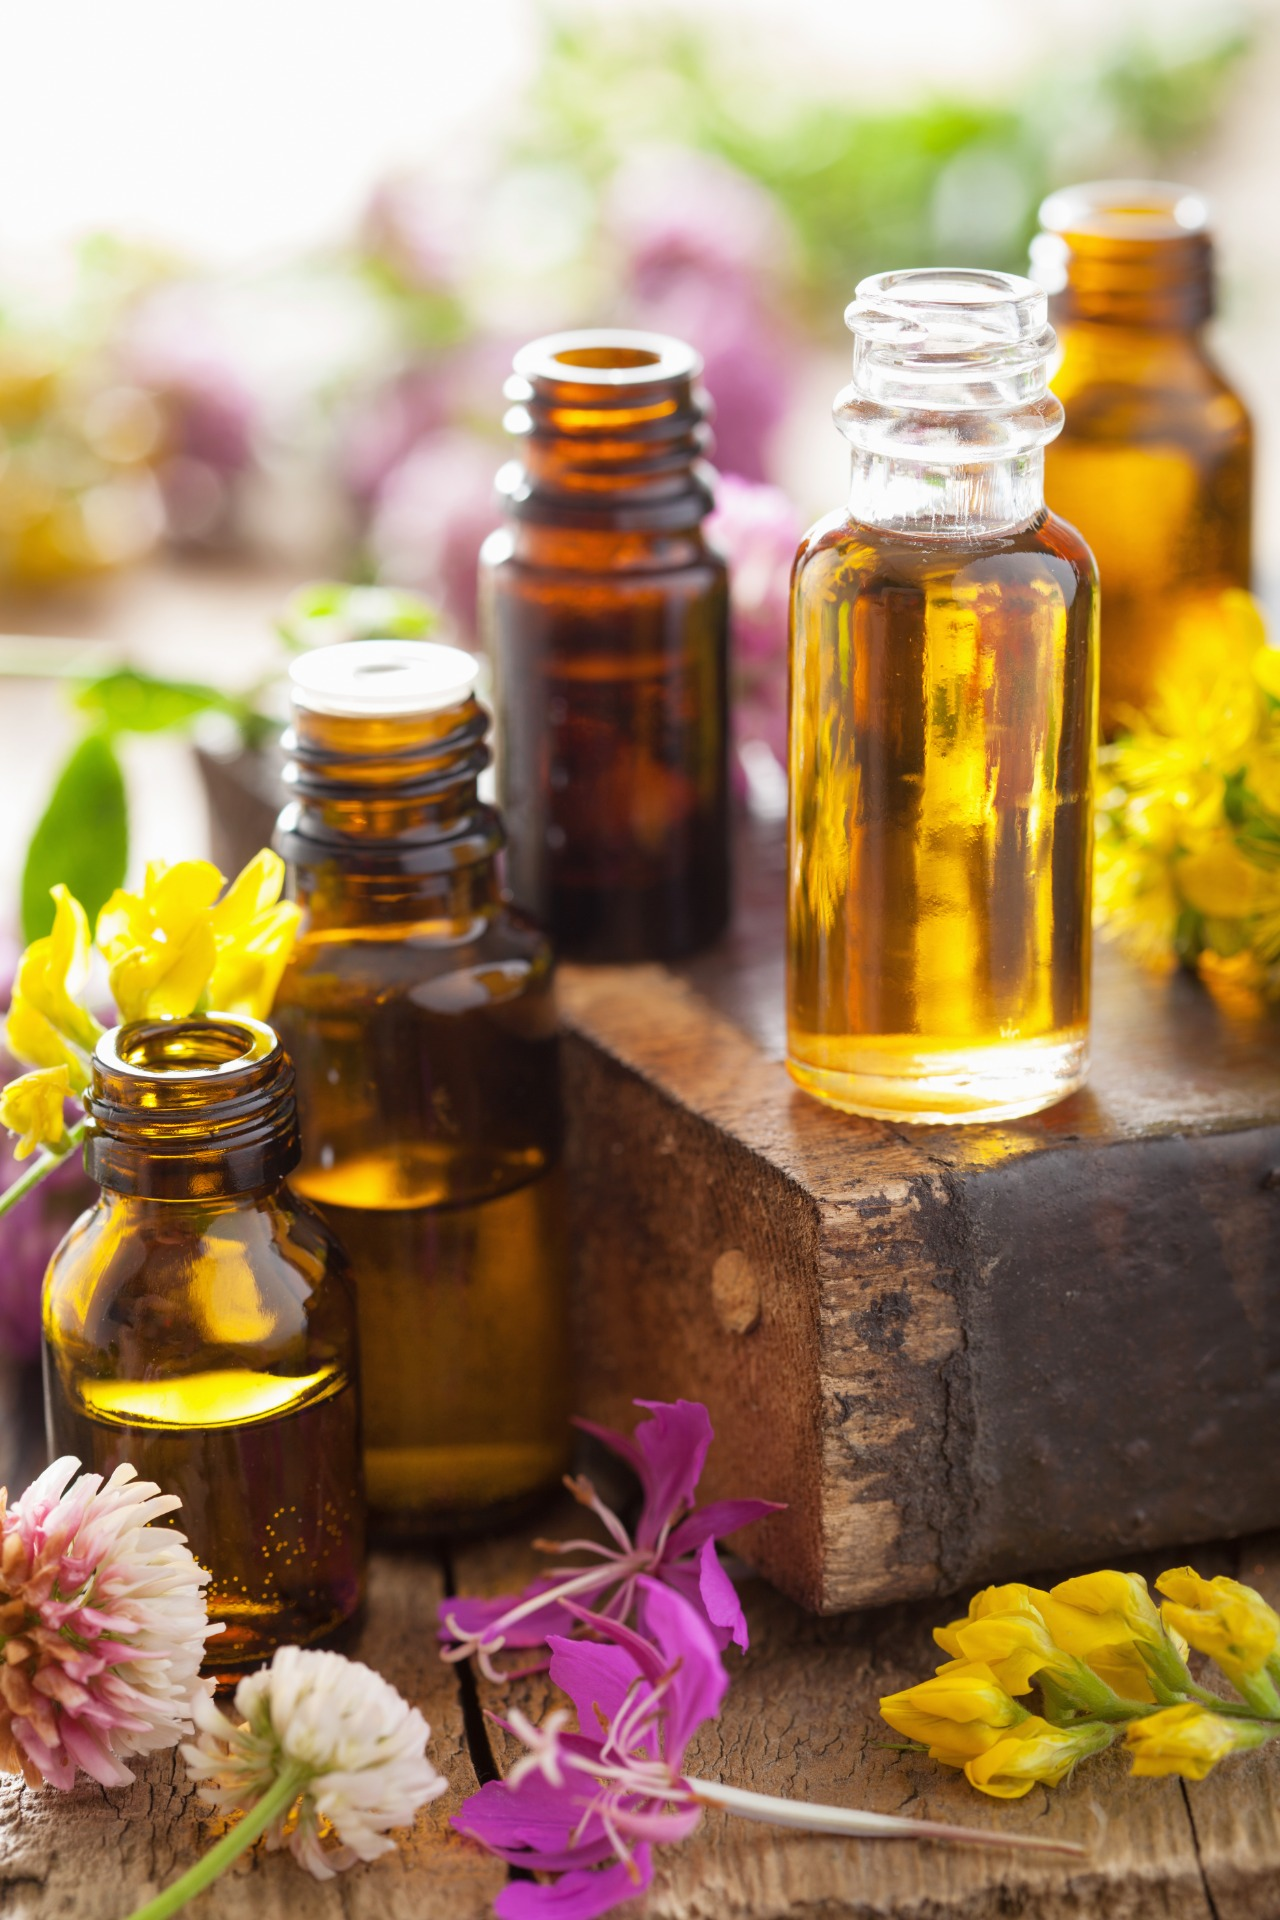 essential oils and medical flowers herbs in bottles